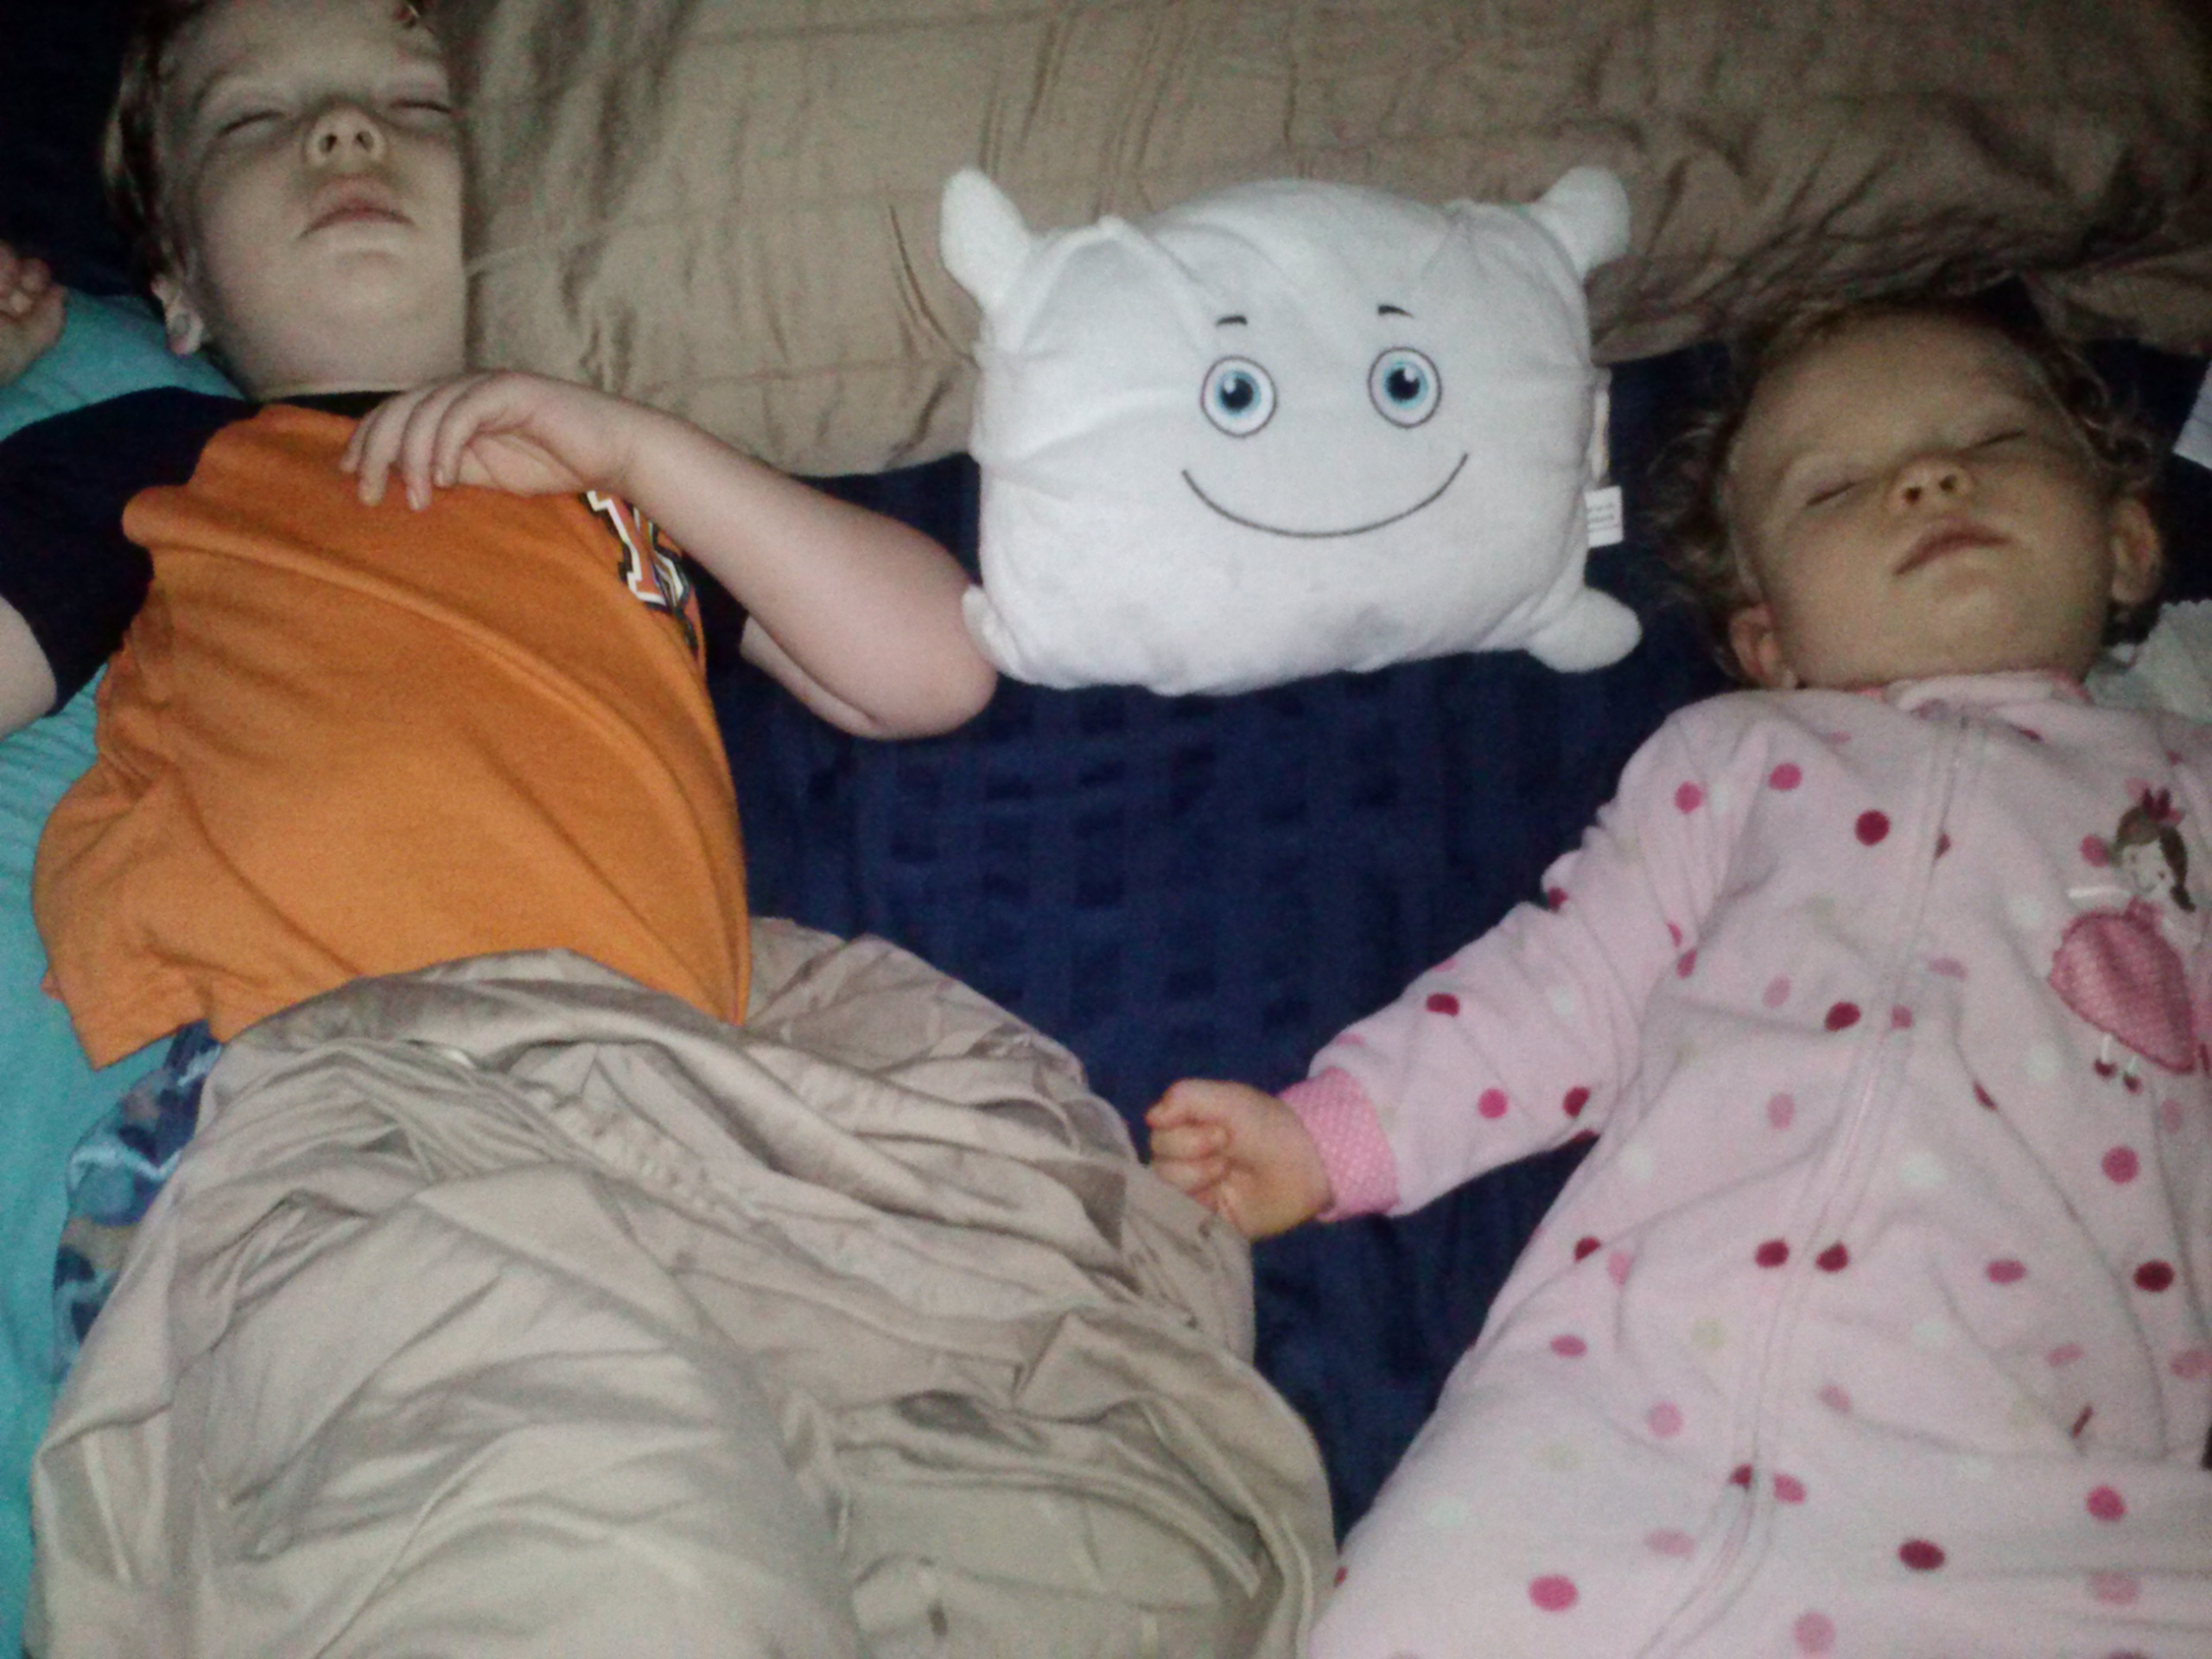 Mommy and daddy really need to work on this sleeping arrangement!